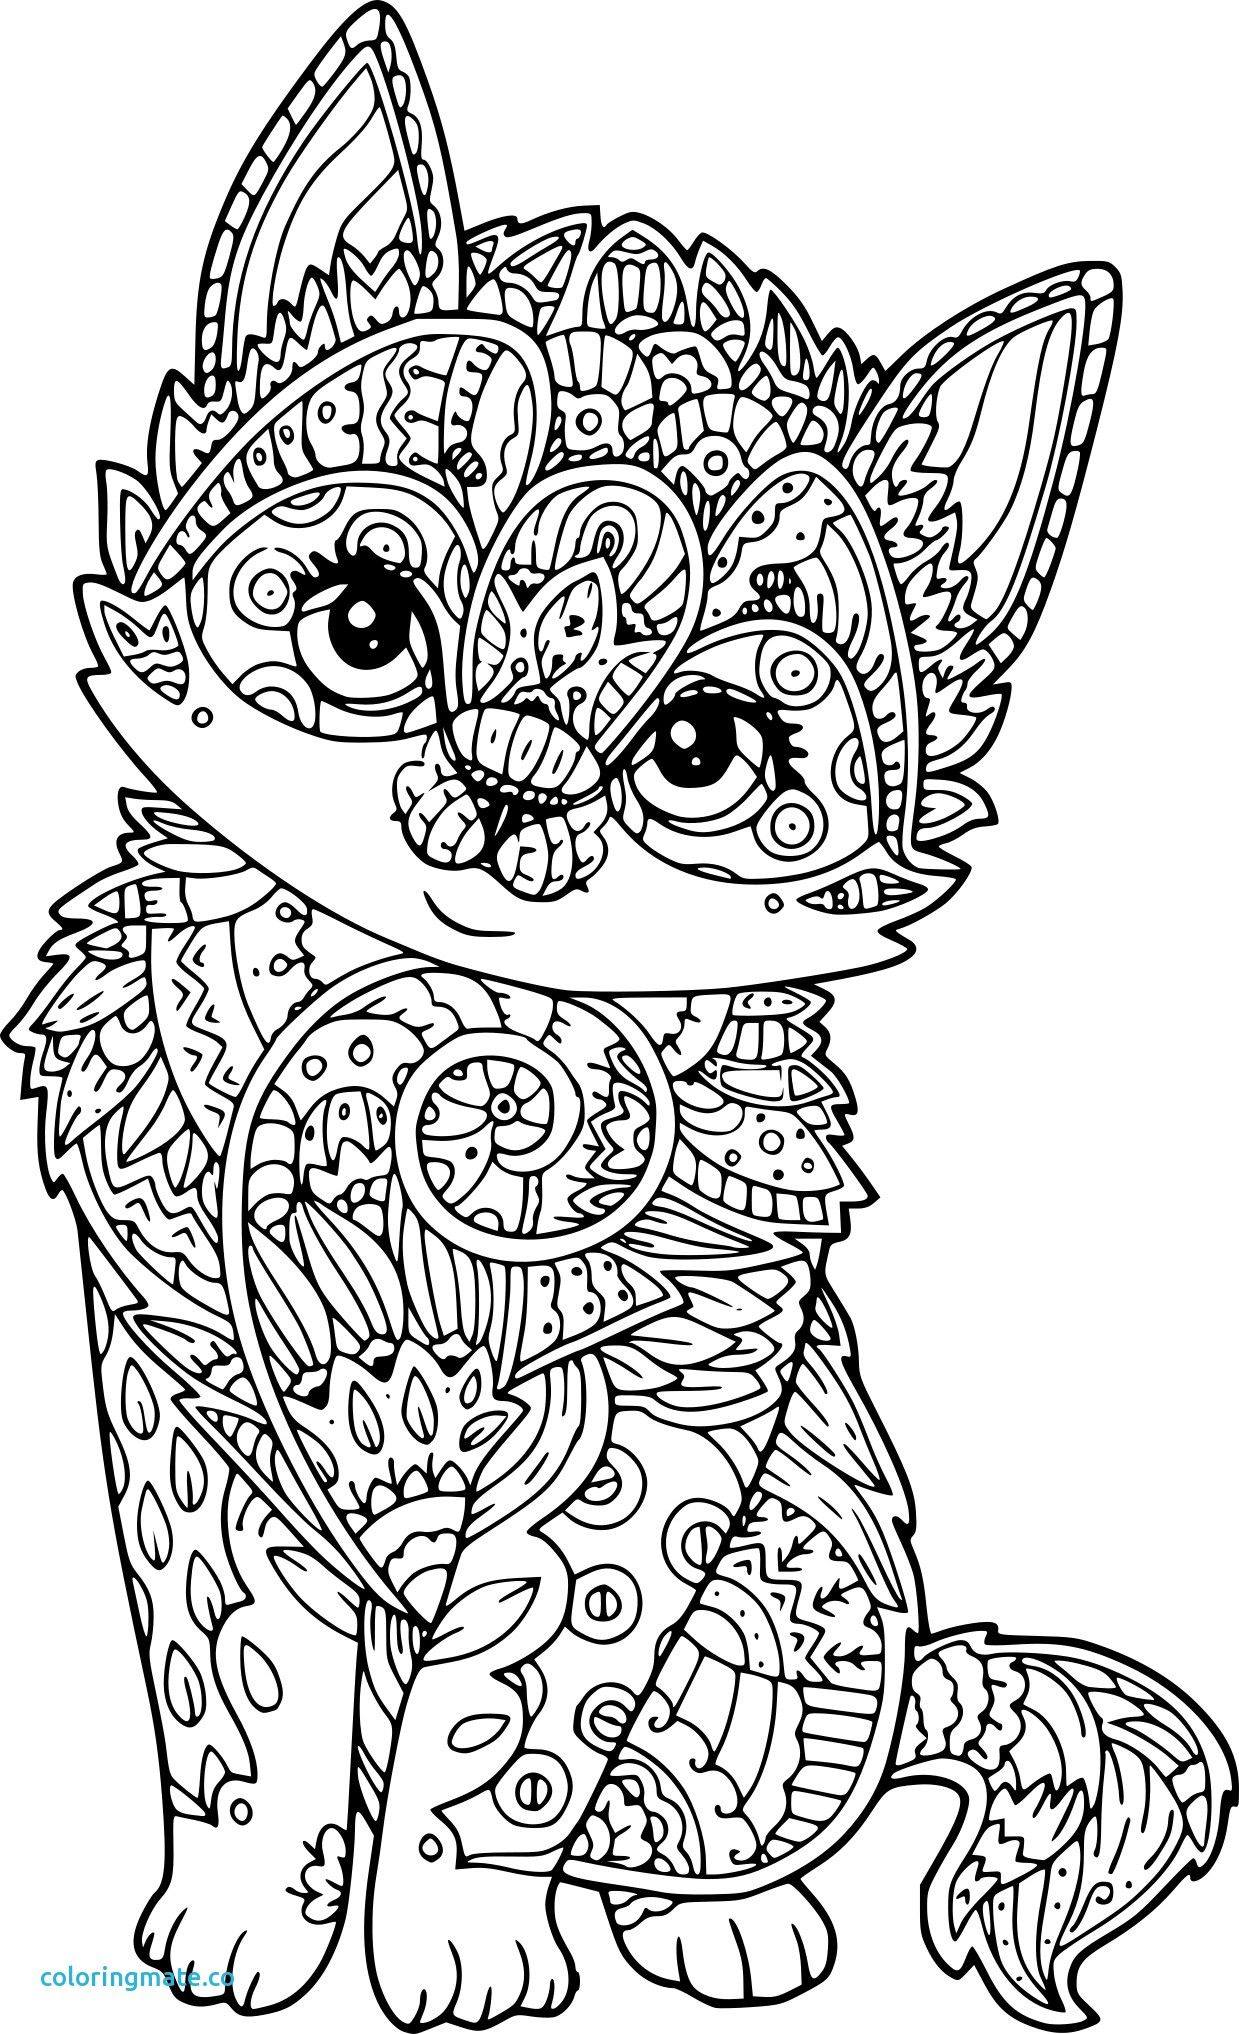 Coloriage mandala chat papillon fresh coloriage chat - Image anti stress ...